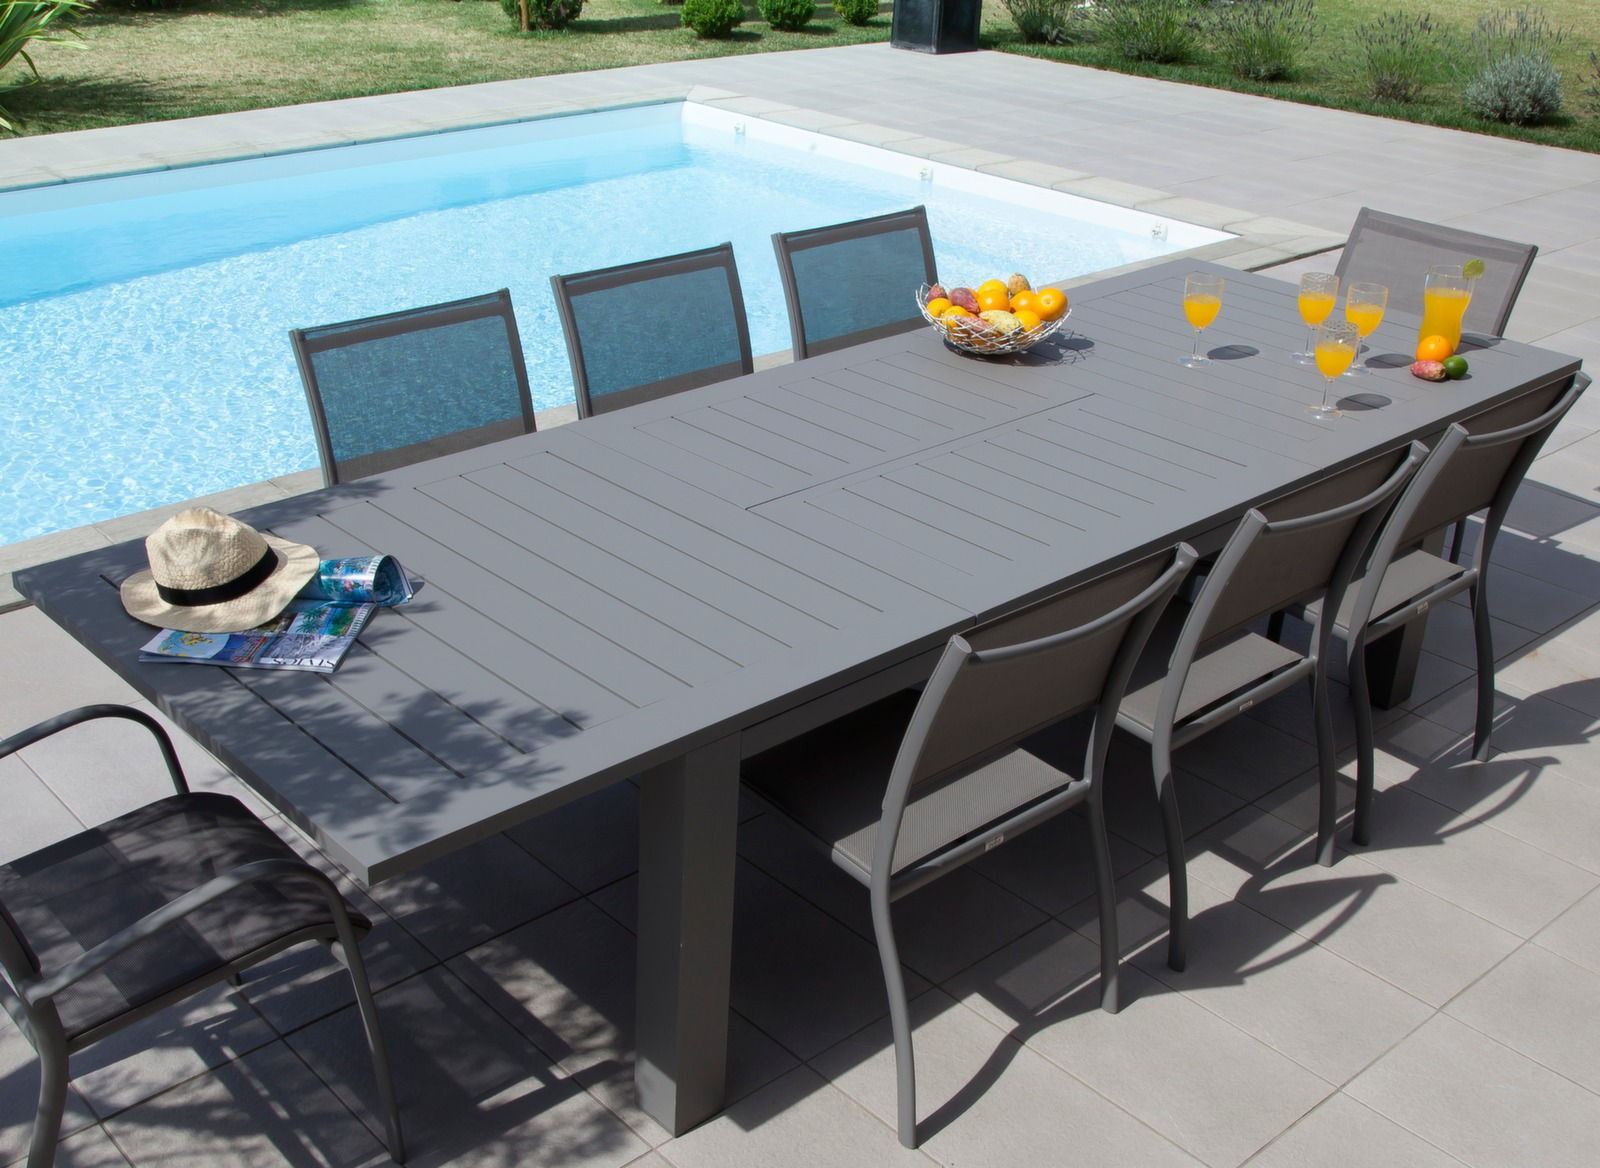 Table Jardin 12 Places Table De Jardin Aluminium 12 Places Aurore - Gamme Océo